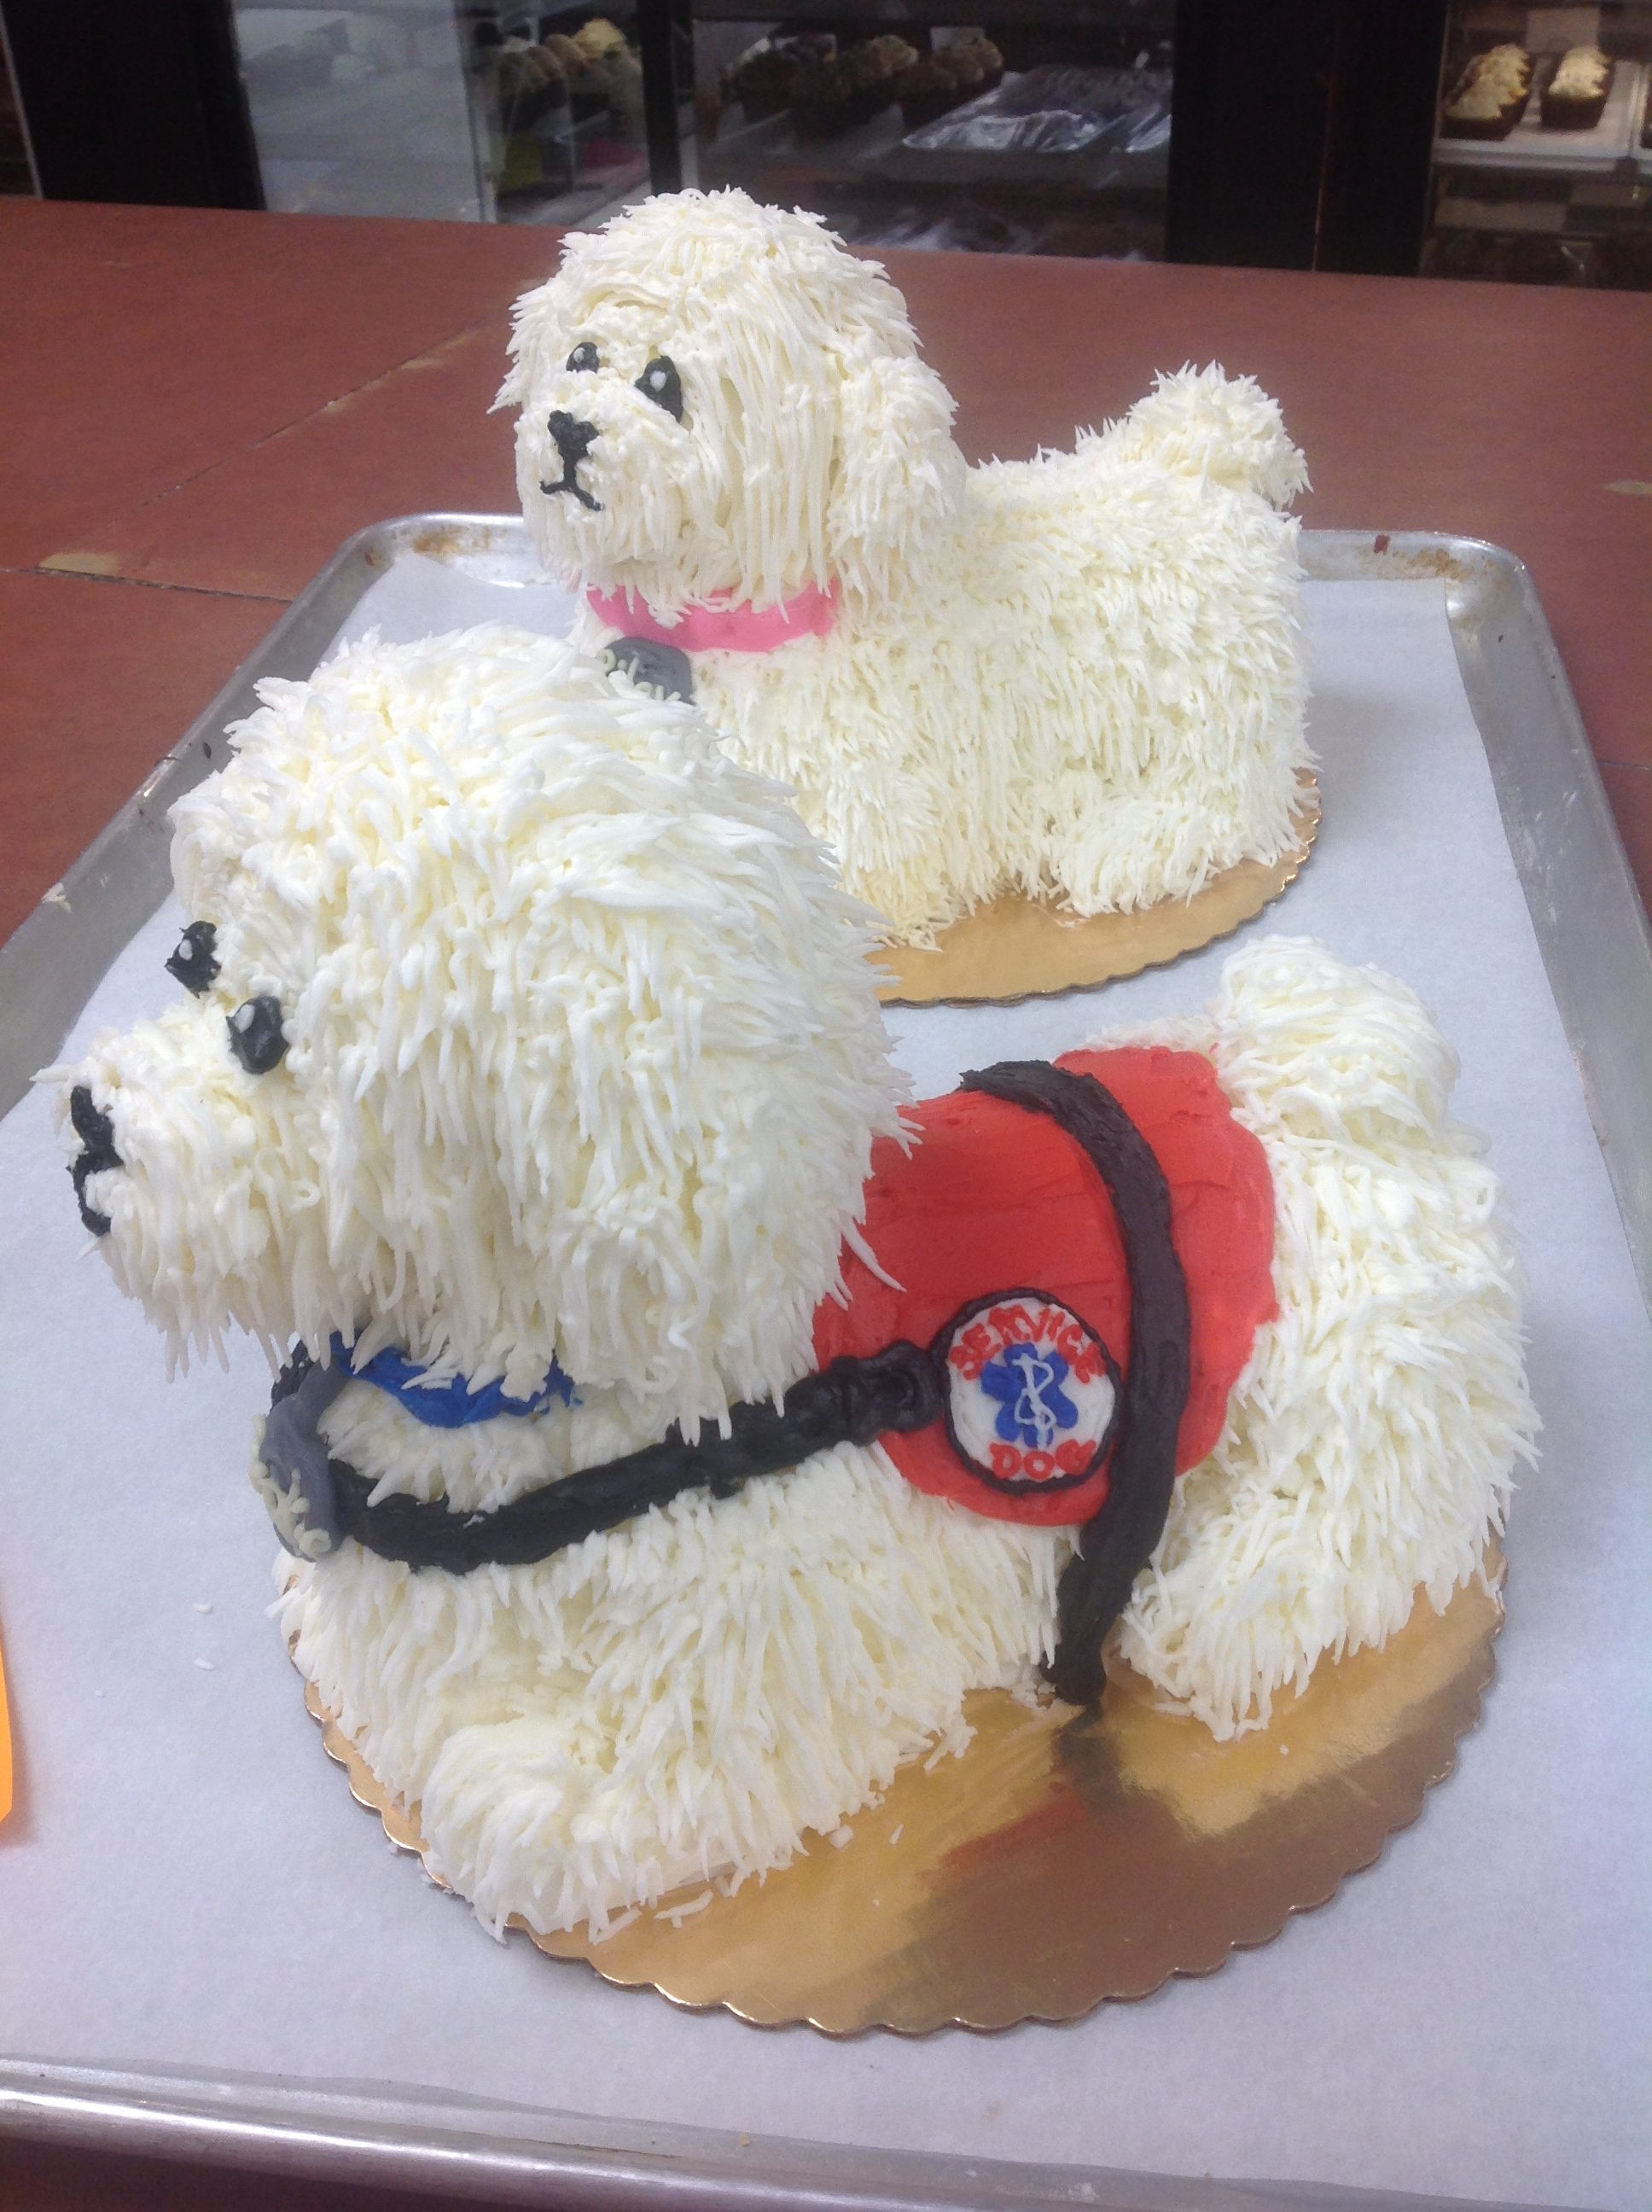 Puppy Dog Themed Cakes at Dolce and Biscotti Italian Bakery